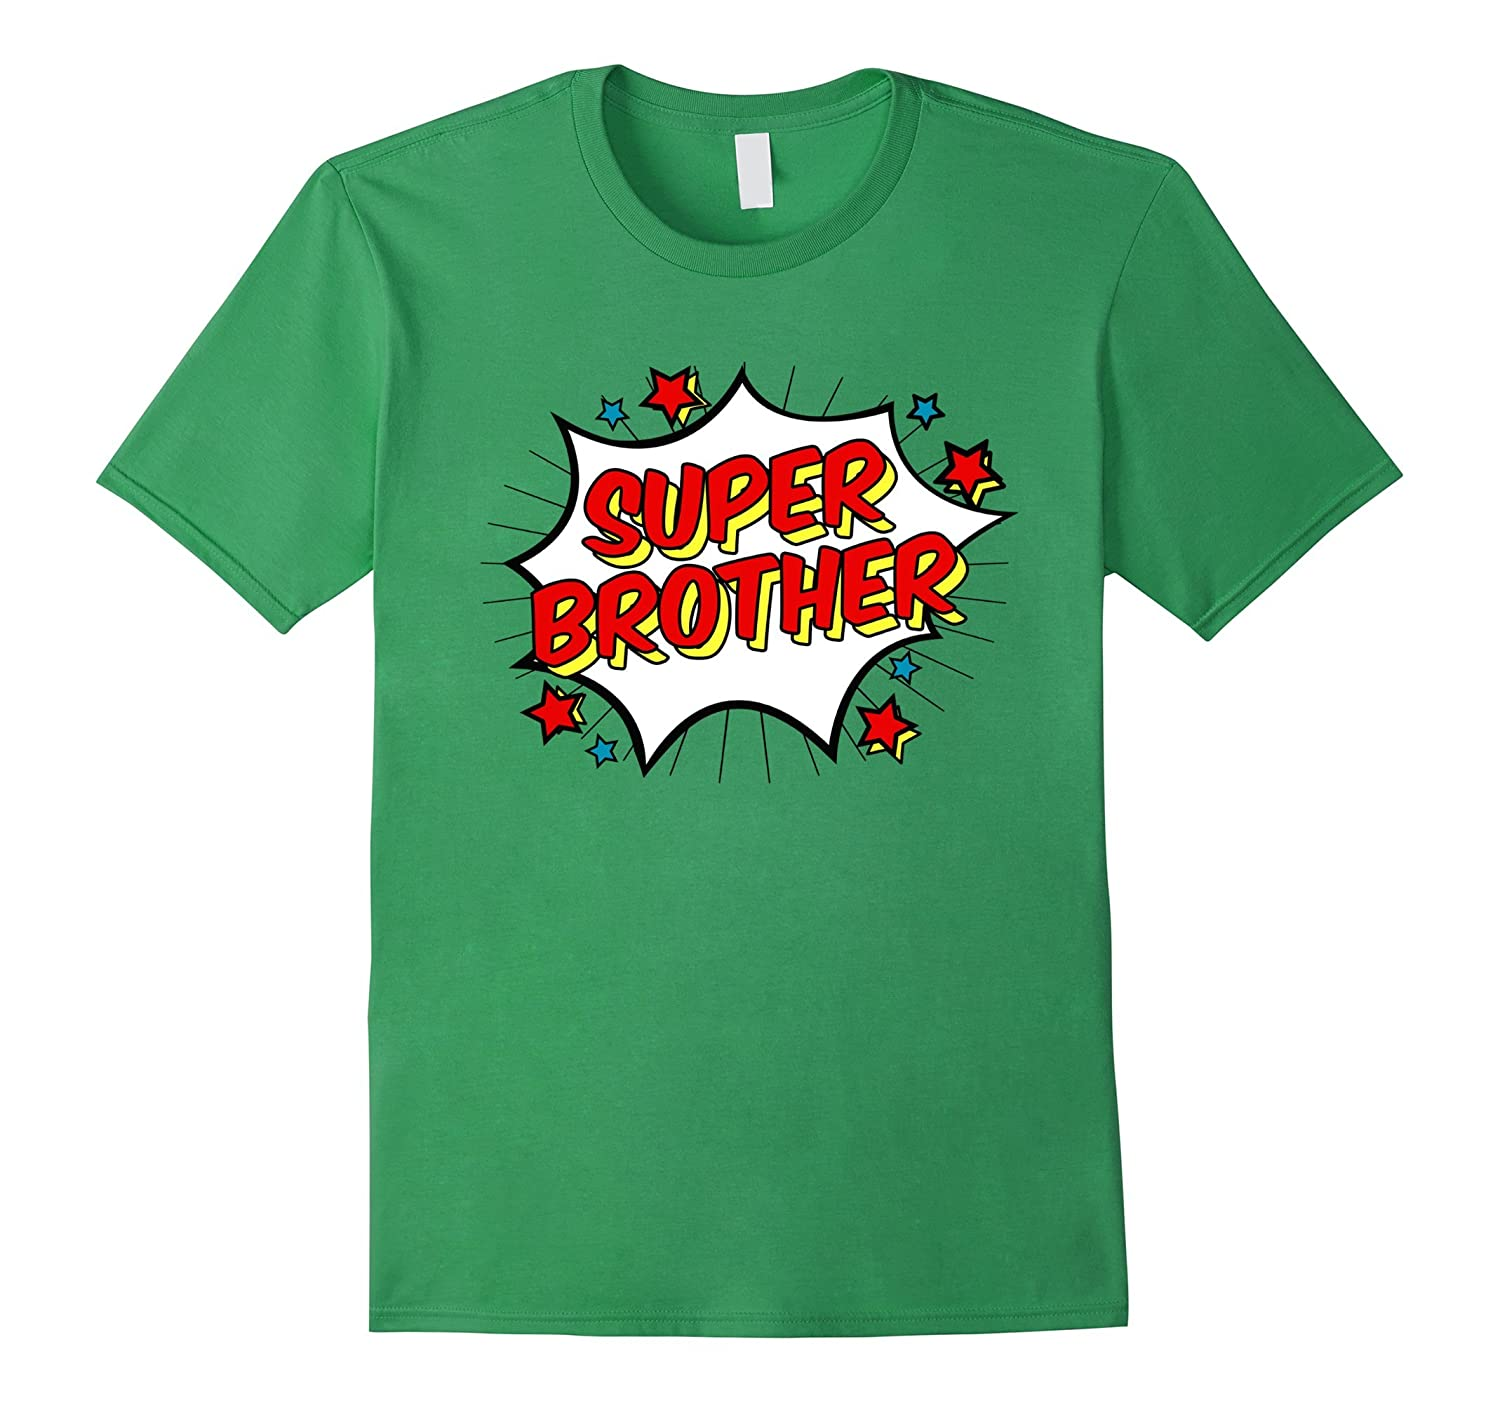 Superhero Super Brother T-Shirt Matching Sibling Shirts-Rose